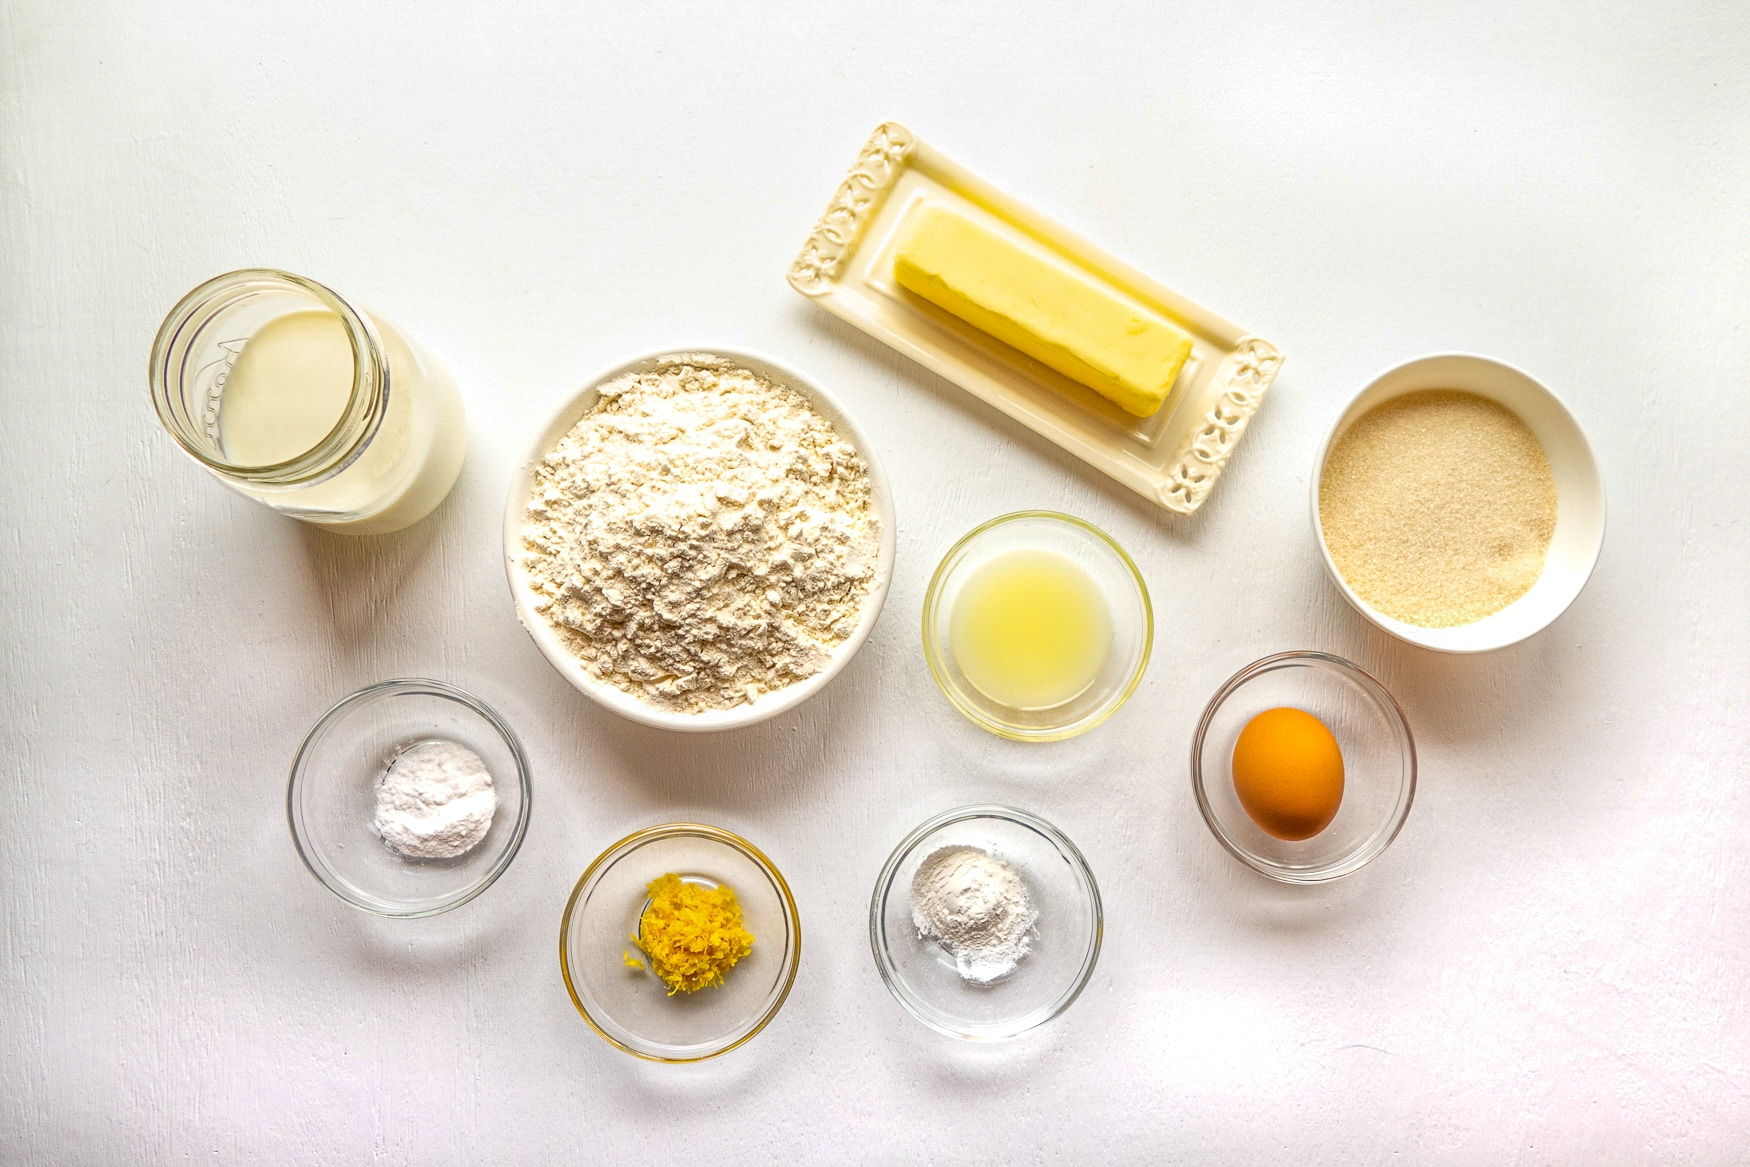 Ingredients needed to make cupcakes displayed on a white background.